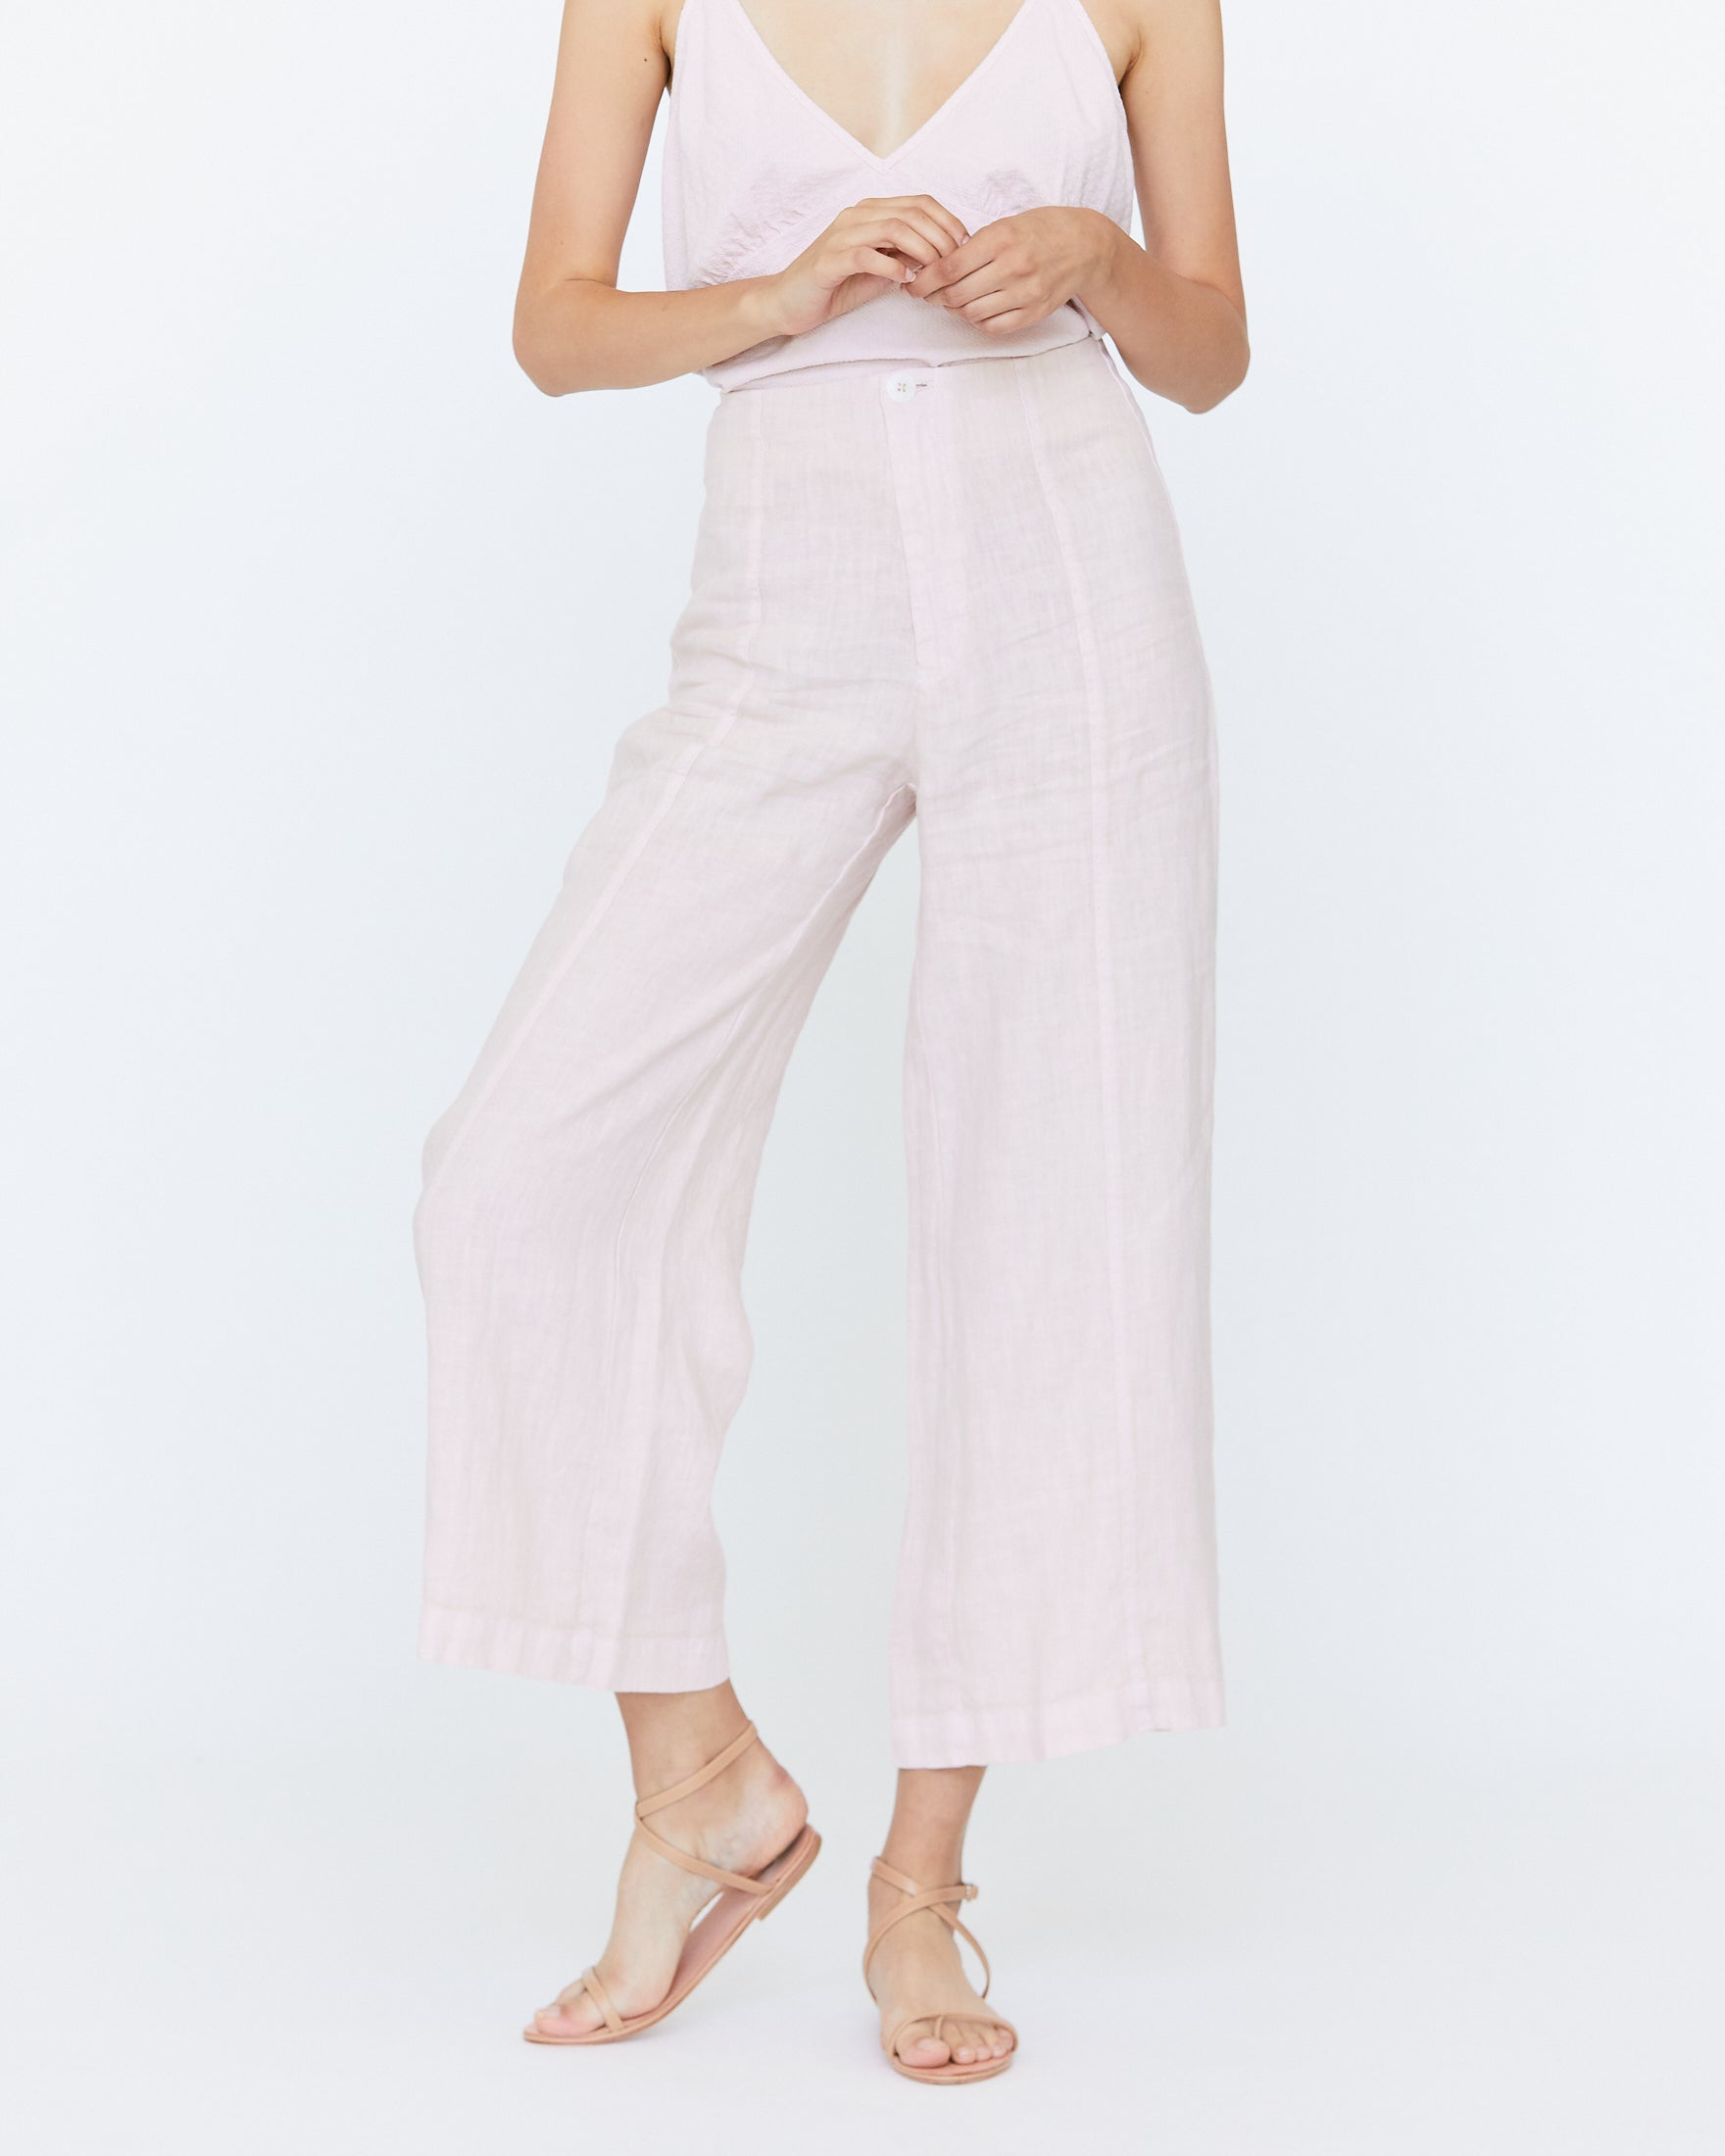 LUCIA PANT - PEARL